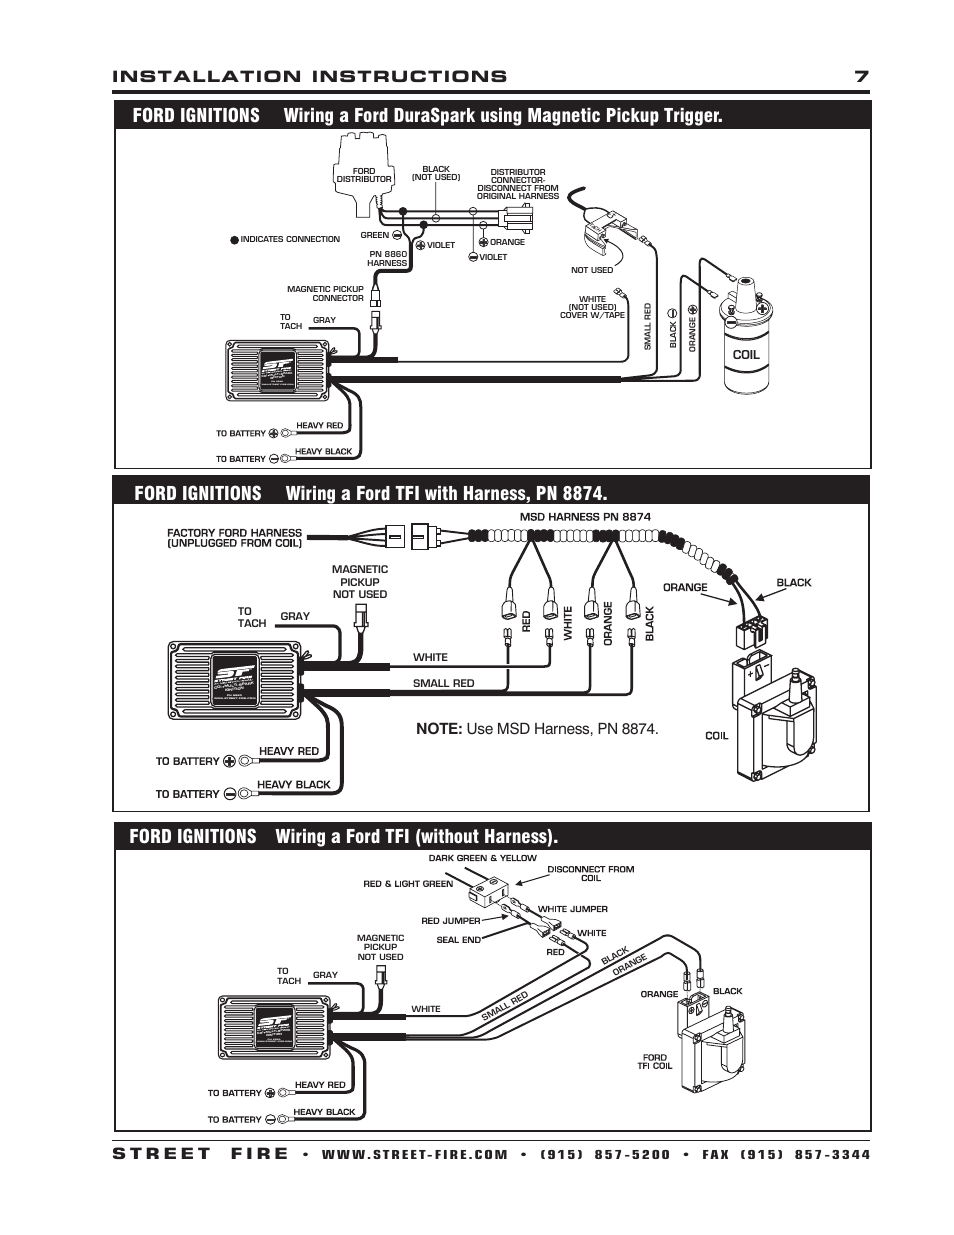 ford ignitions wiring a ford tfi (without harness) | msd 5520 street fire  ignition control installation user manual | page 7 / 12  manuals directory